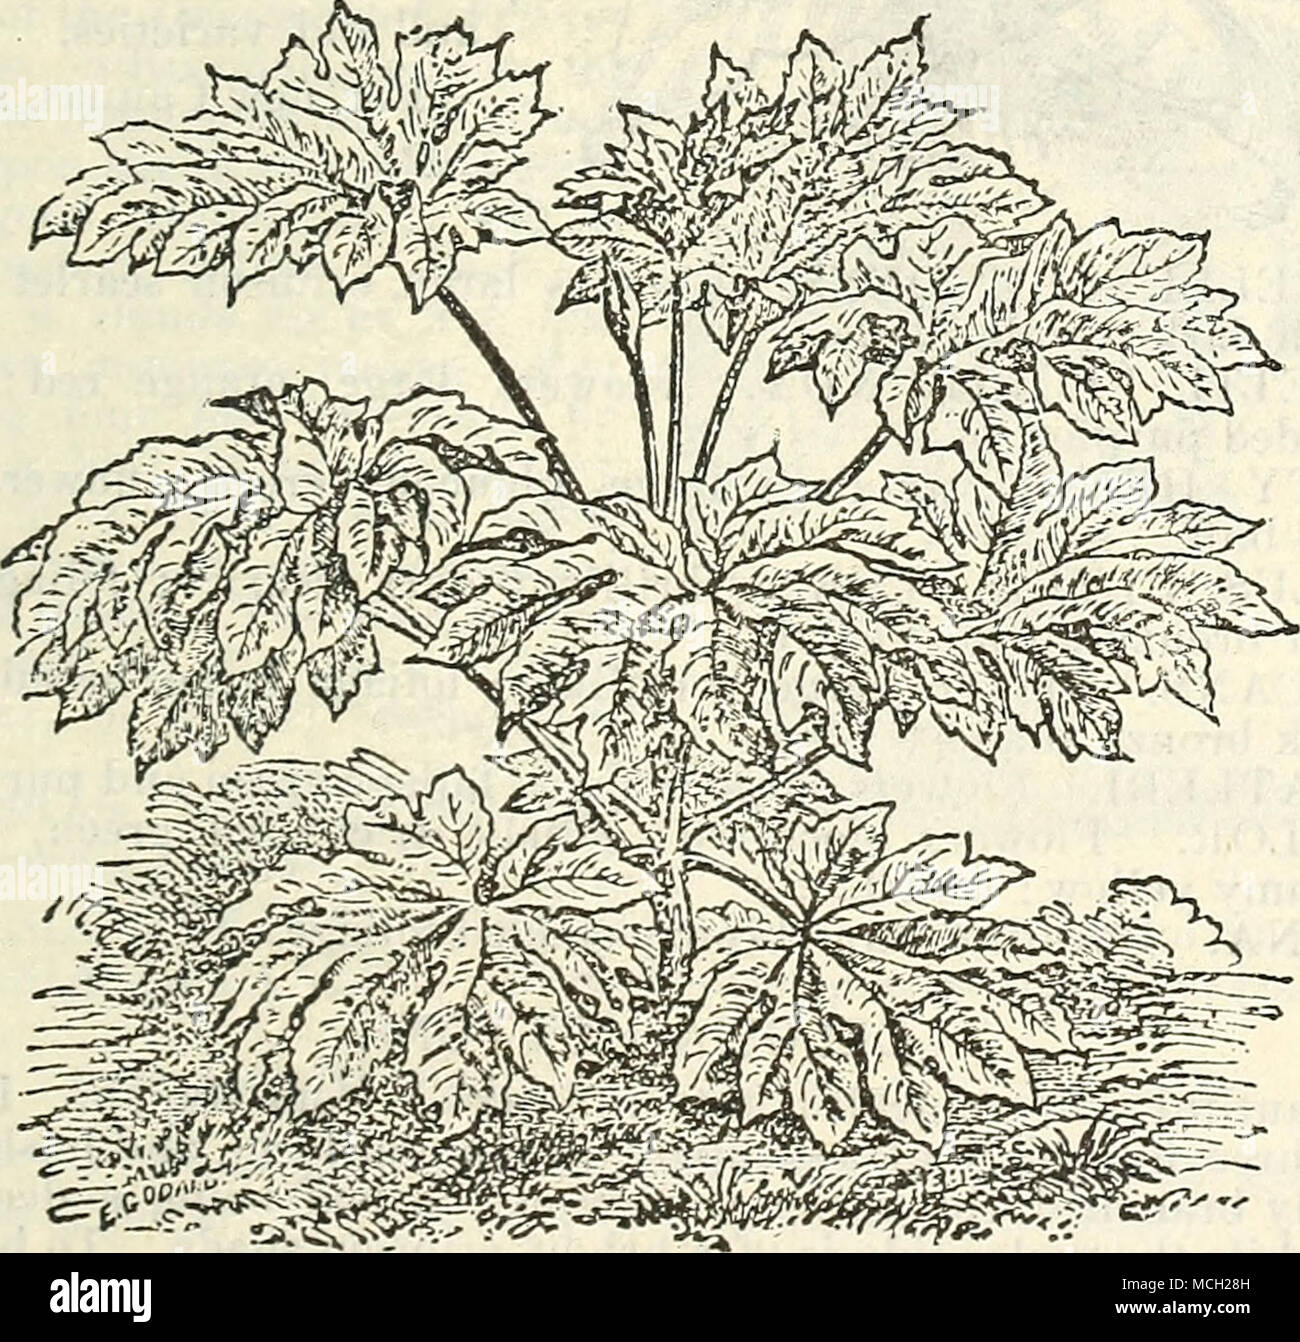 . ARALIA PAPYRIFERA. A very showy plant, with large handsome leaves, the under side of which is covered with a woolly down; fine for vases or bedding out. 50 ets. - Stock Image